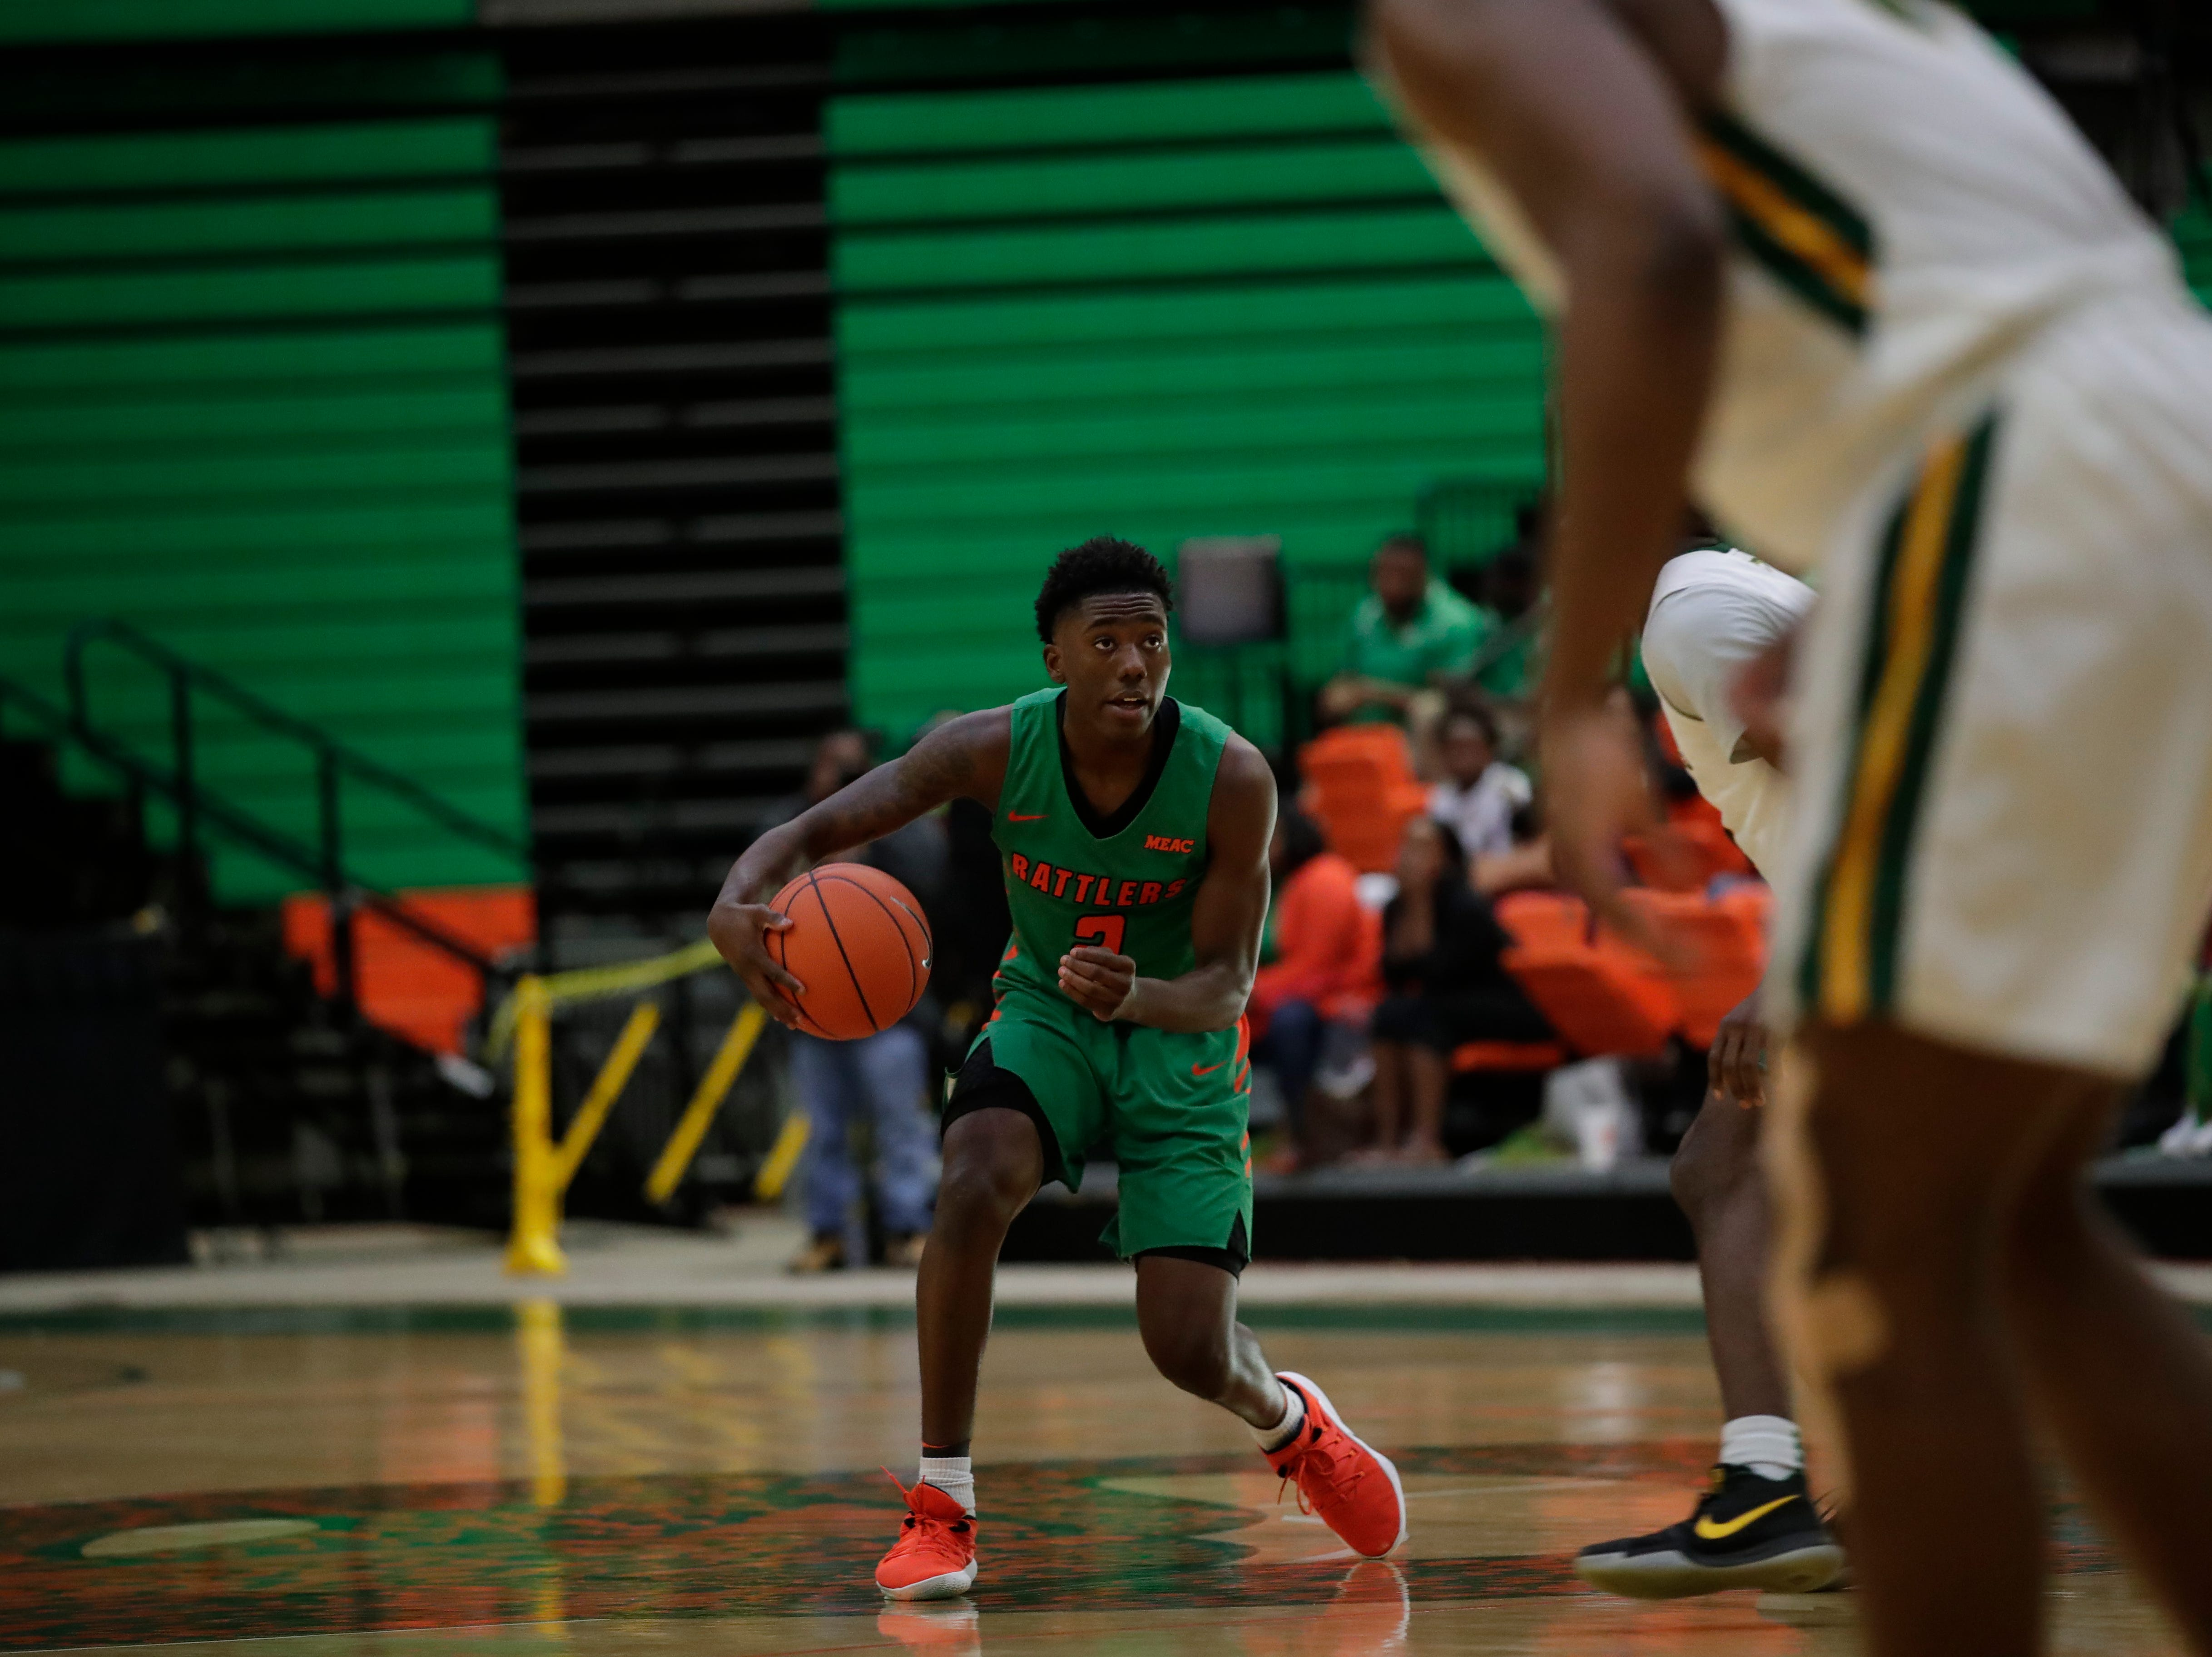 Florida A&M guard Kamron Reaves had 8 point, 6 rebounds and 3 steals against Norfolk State at the Alfred Lawson Jr. Multipurpose Center Monday, Feb. 11, 2019.